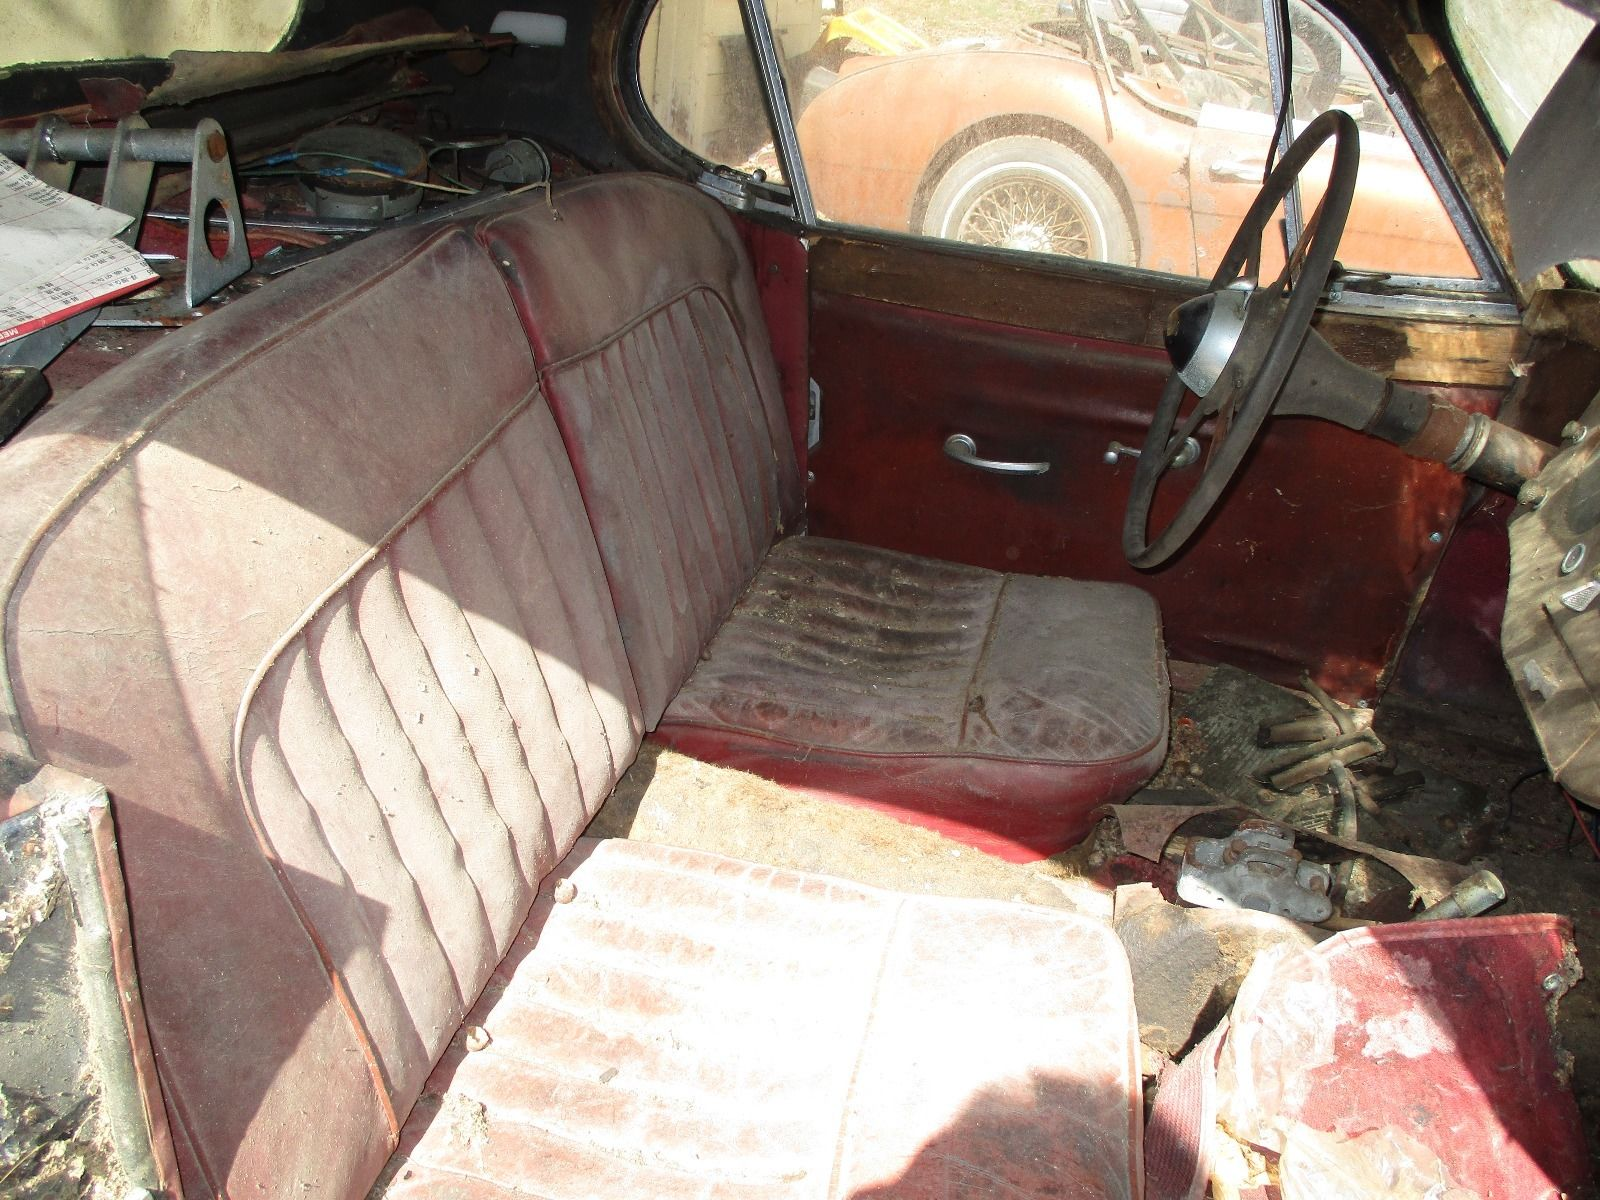 The interior is fairly intact, but in rough shape.